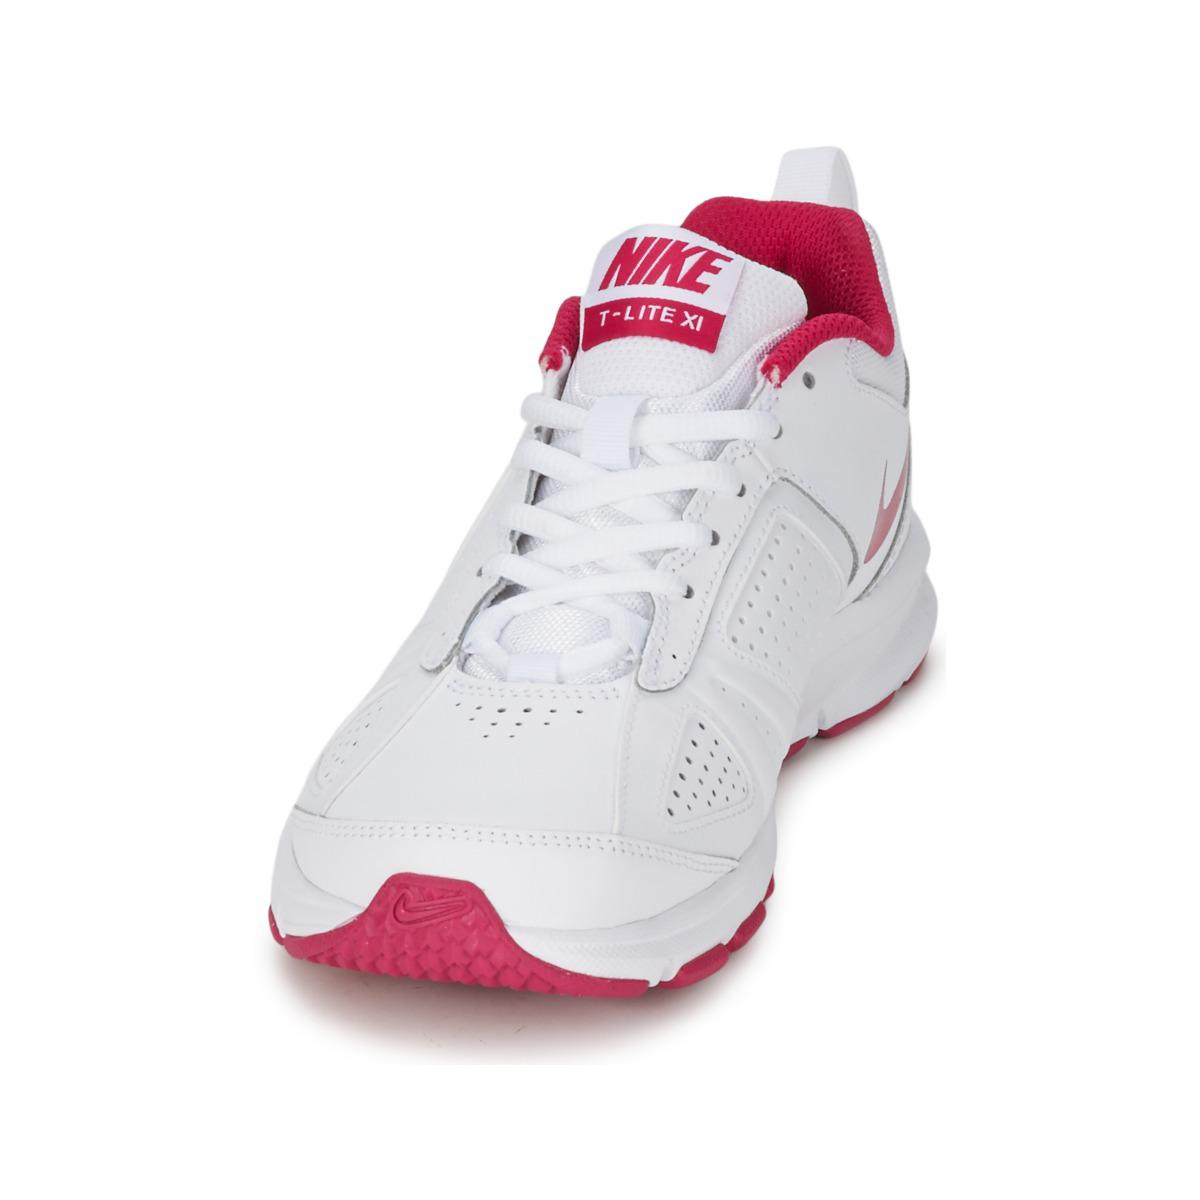 Nike Leather T-lite Xi Women's Sports Trainers (shoes) In White